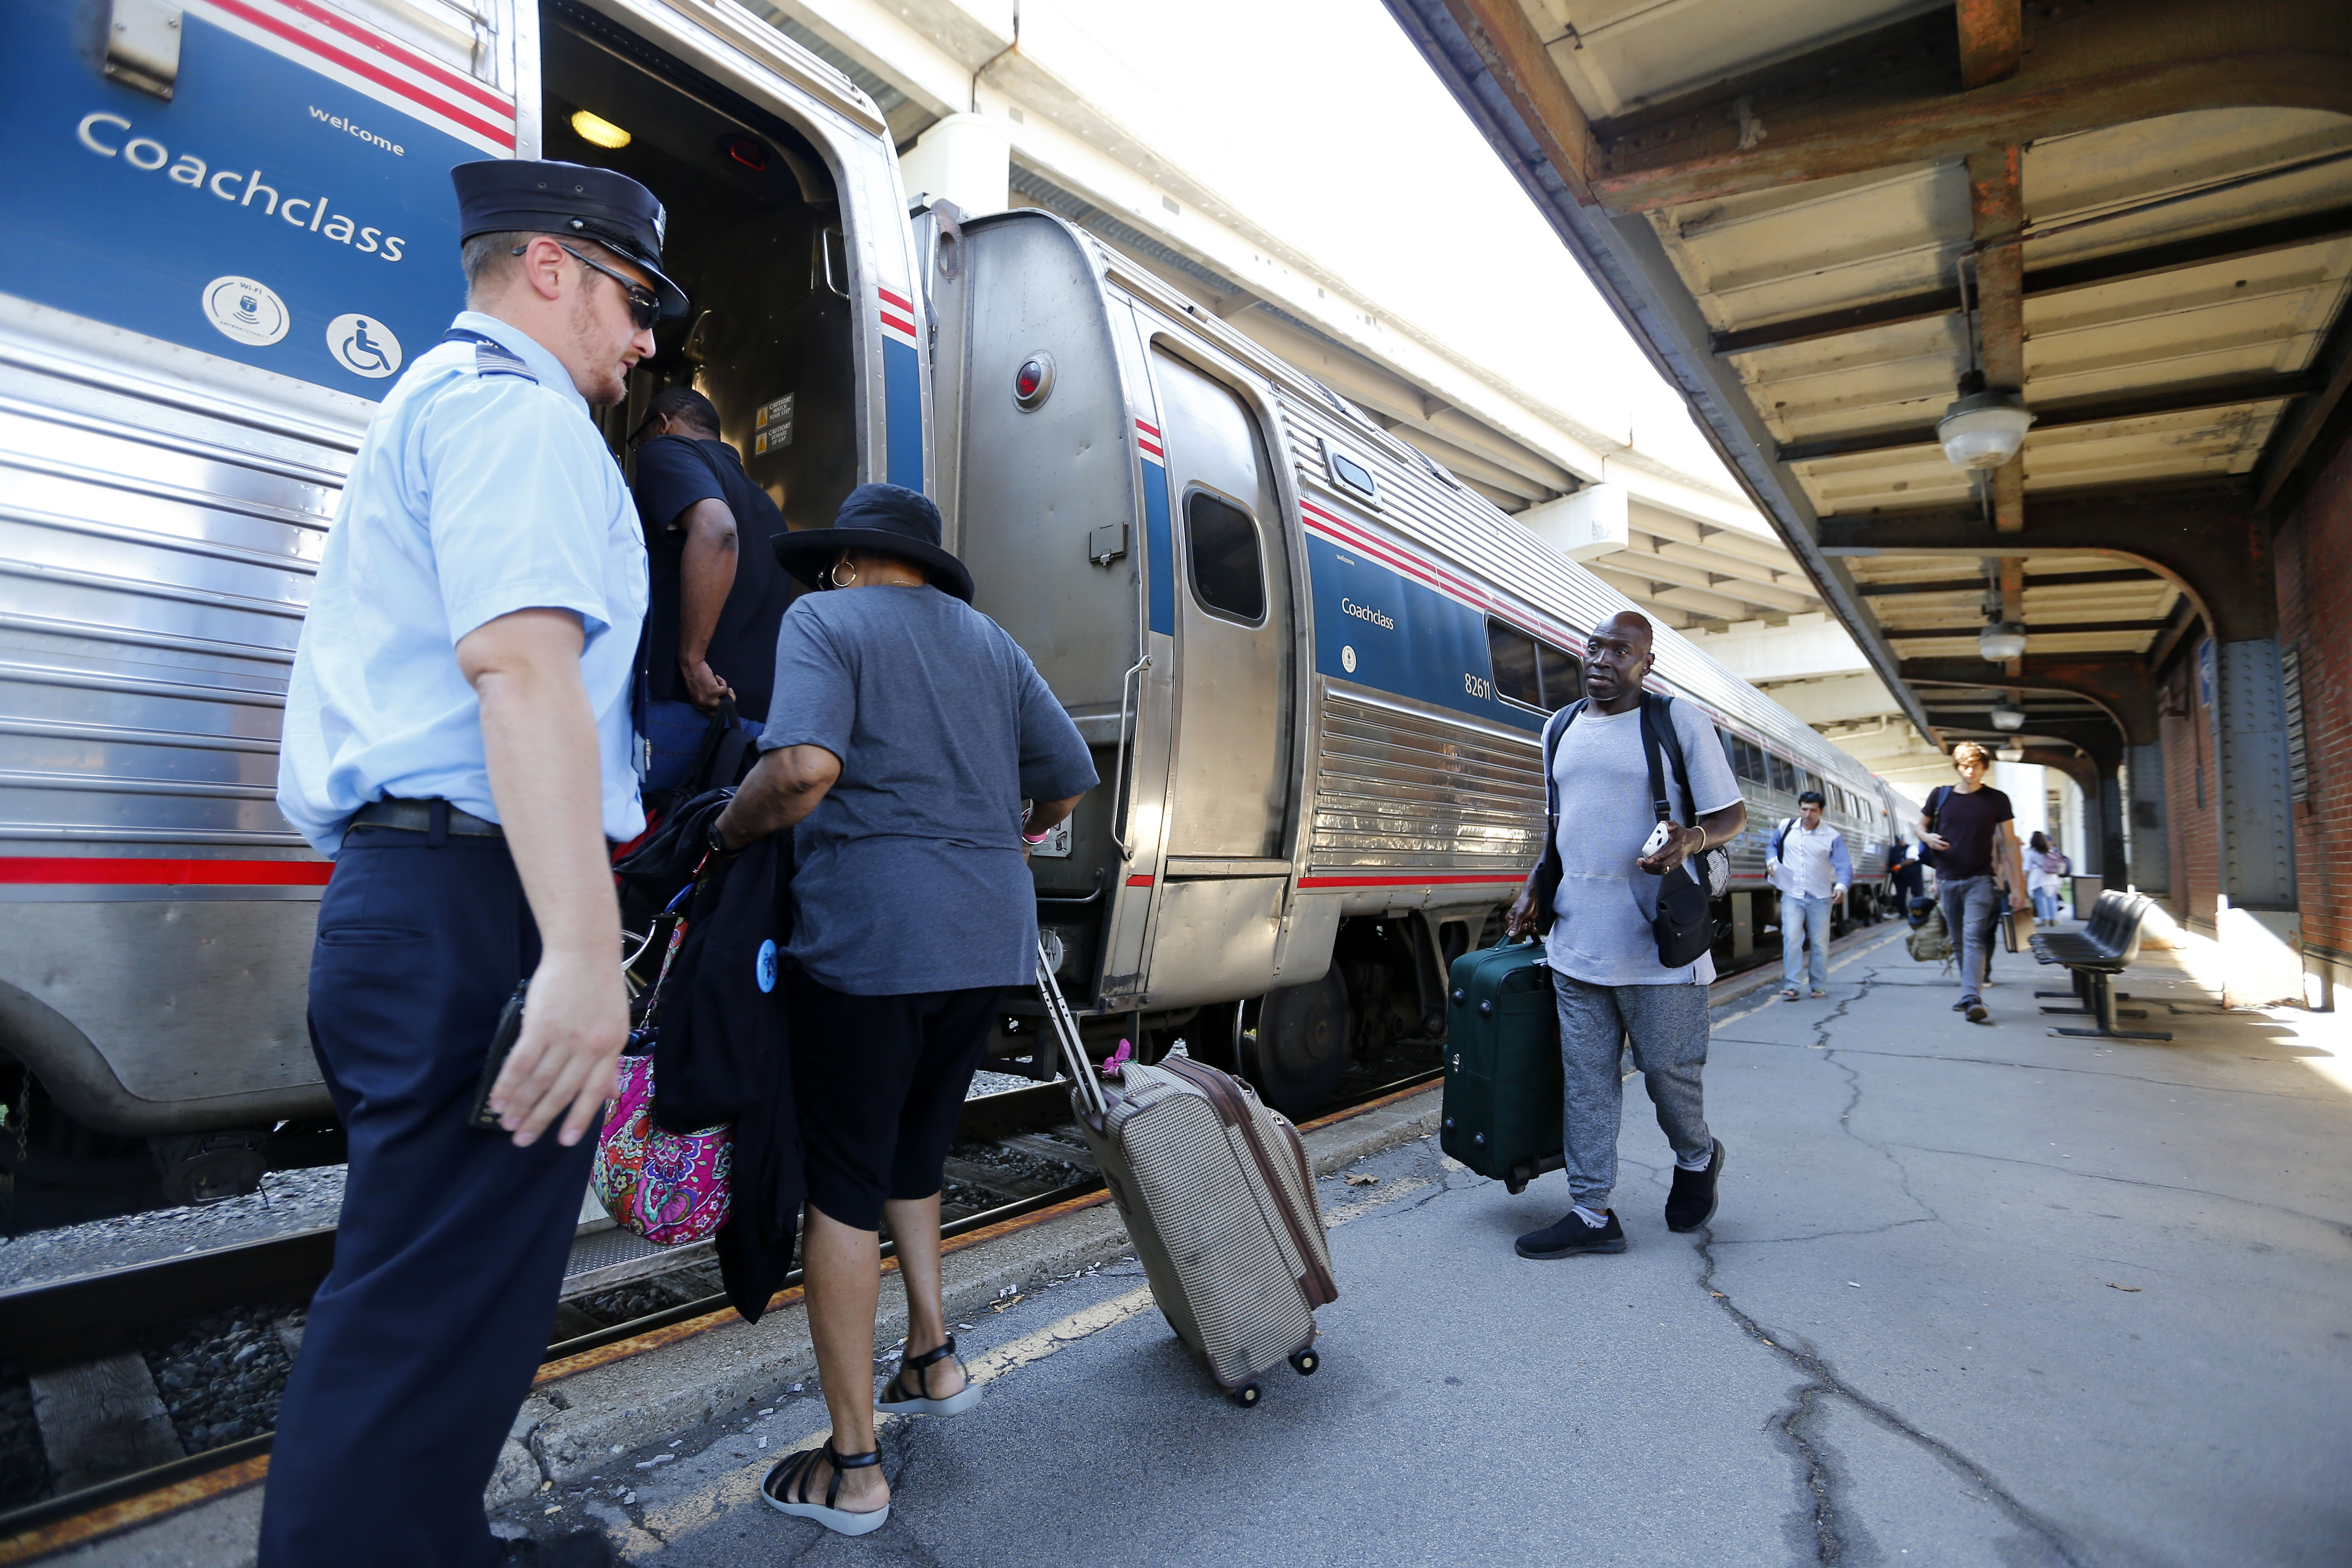 Passengers juggle their luggage as they board an Amtrak train at the passenger railroad station on Exchange Street in Downtown Buffalo. The station is overdue for a modernization upgrade.